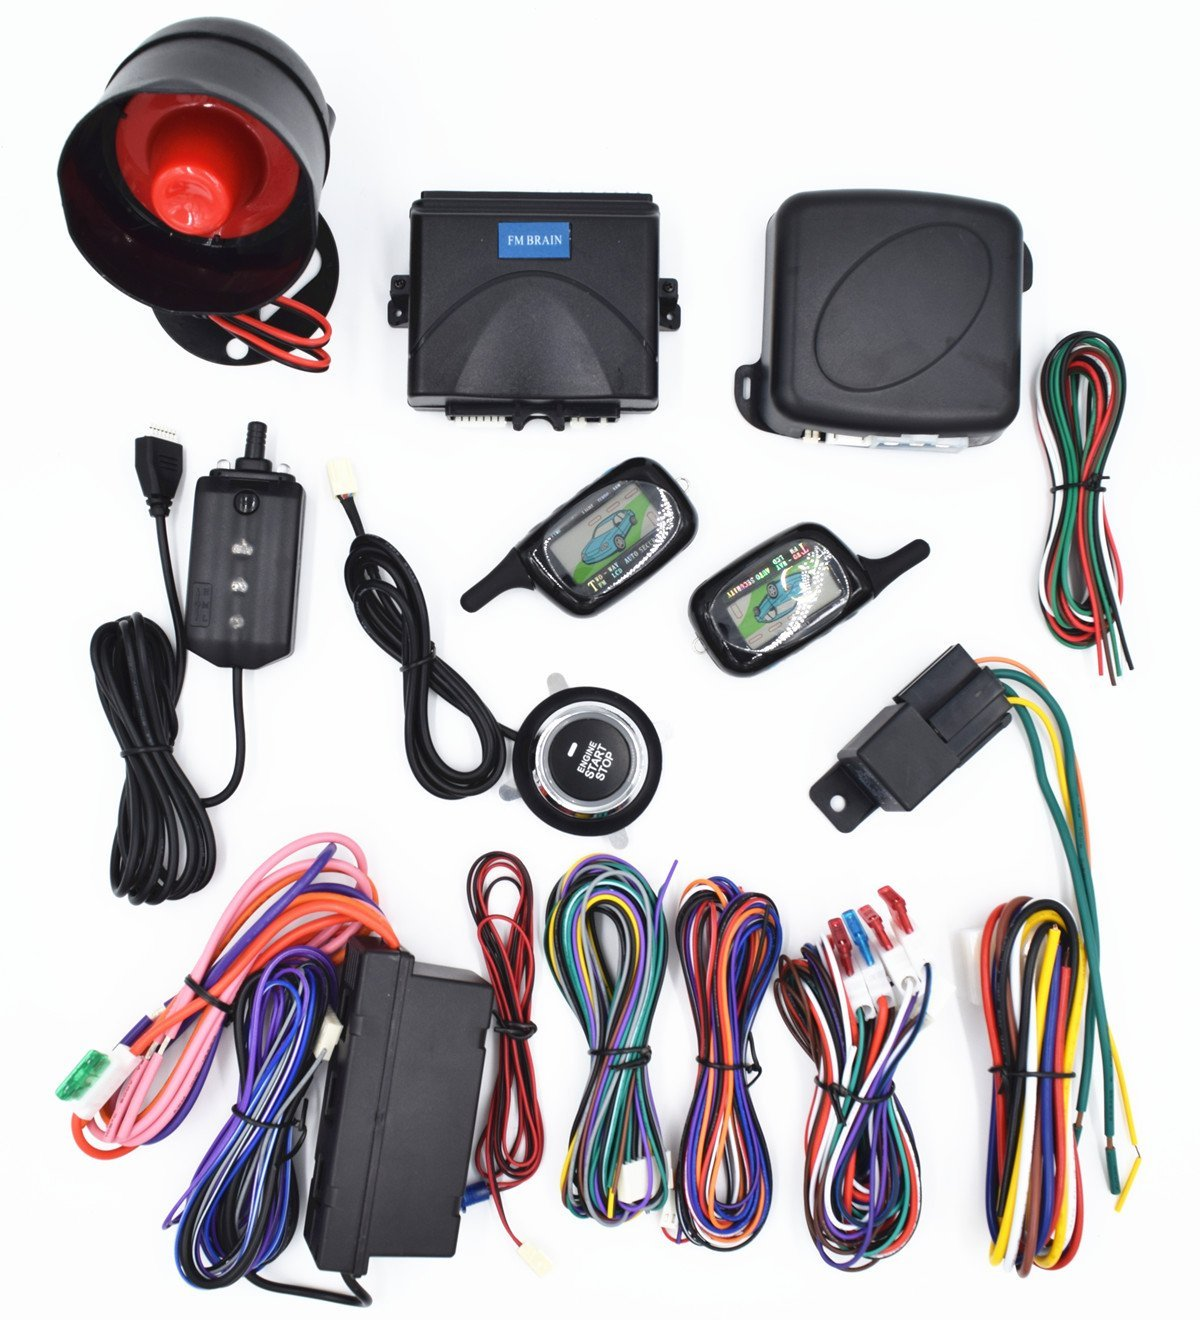 CarBest Vehicle Security Paging Car Alarm 2 Way LCD Sensor Remote Engine Start System Kit Automatic | One Button Engine Start System | Car Burglar Alarm System